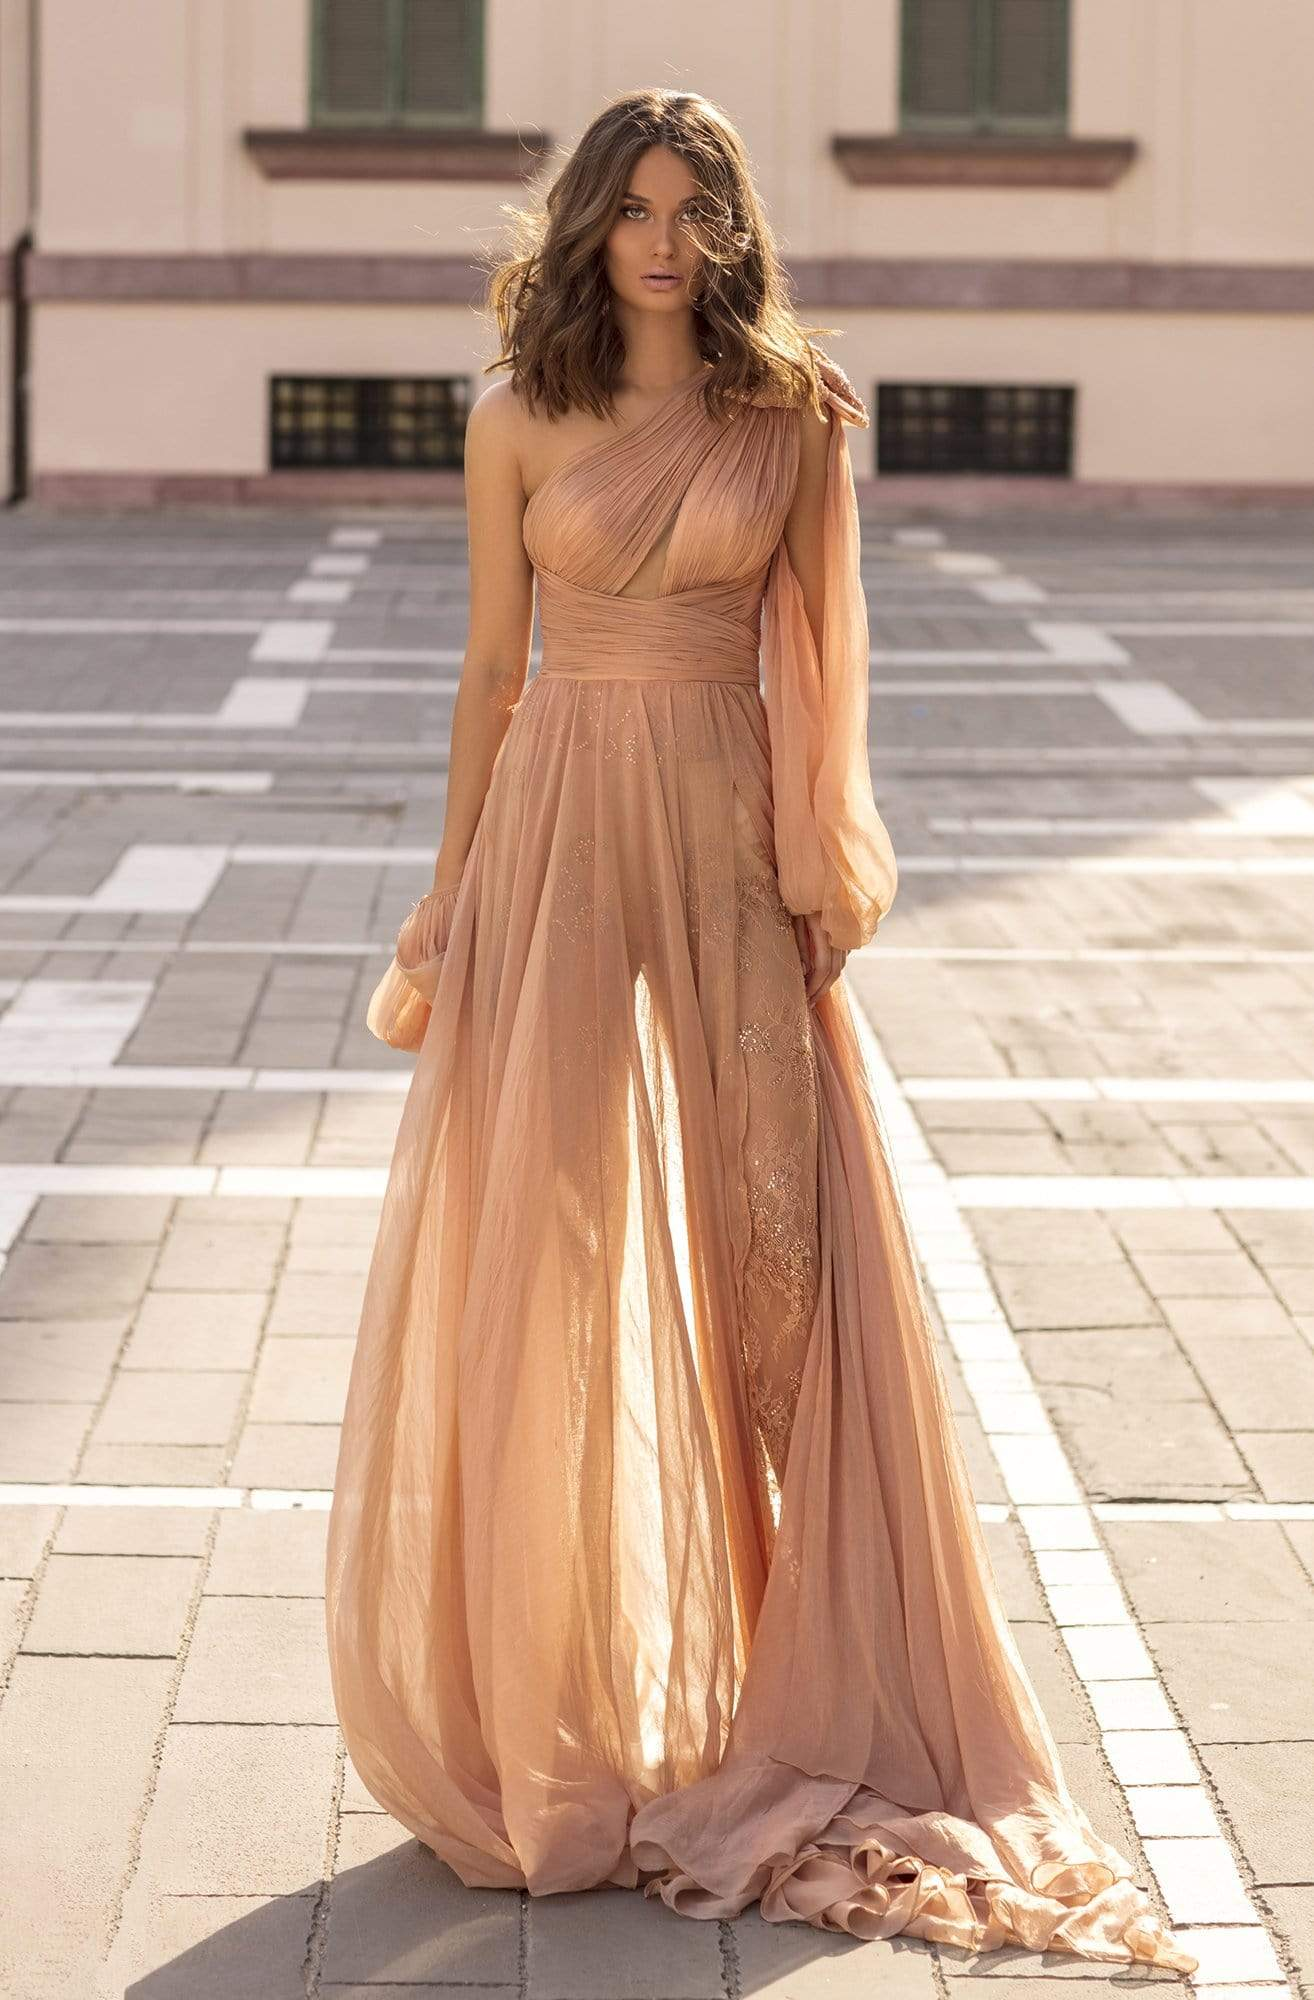 Tarik Ediz - 93924 Ruched Asymmetrical Jumpsuit with Overskirt Evening Dresses 0 / Nude